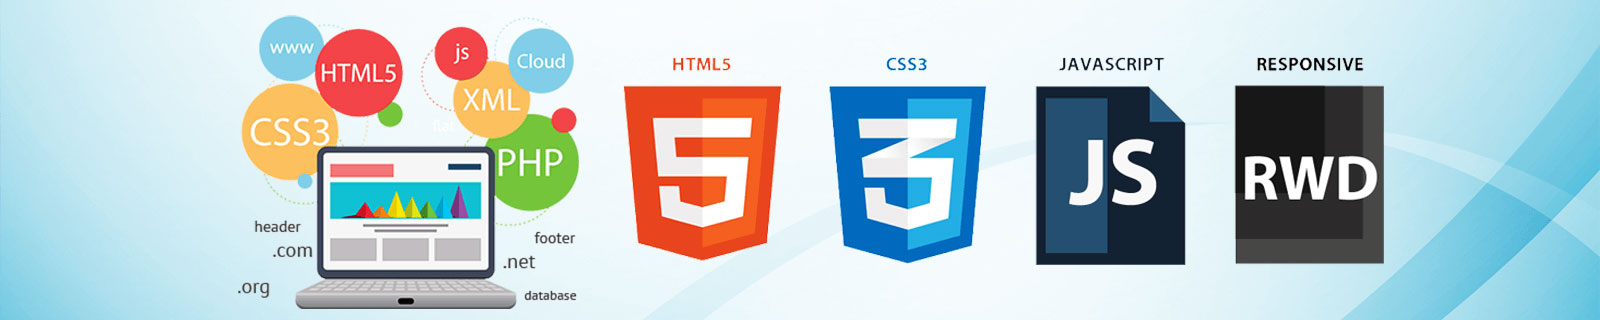 learn html5 css course training tutorial online Proideators institute